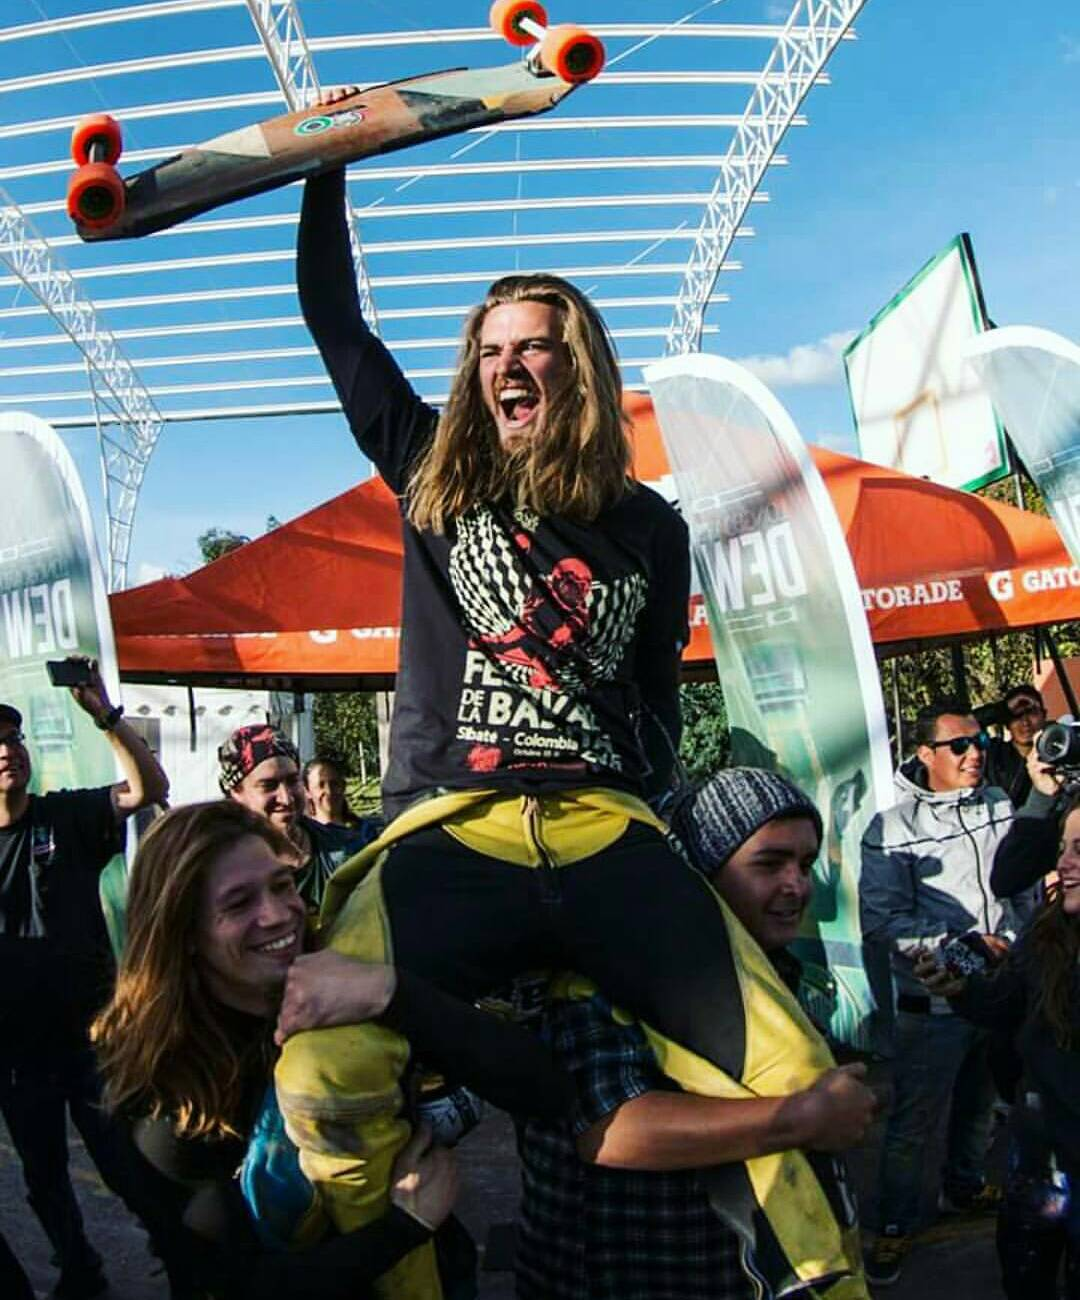 Congratulations to Swedish #LoadedAmbassador @mauritz_arm for winning #LomaLindaDH2015!  This day also marks the beginning of his official contract with Calvin Klein underwear! Double congrats!  #LoadedBoards #Truncated #Tesseract